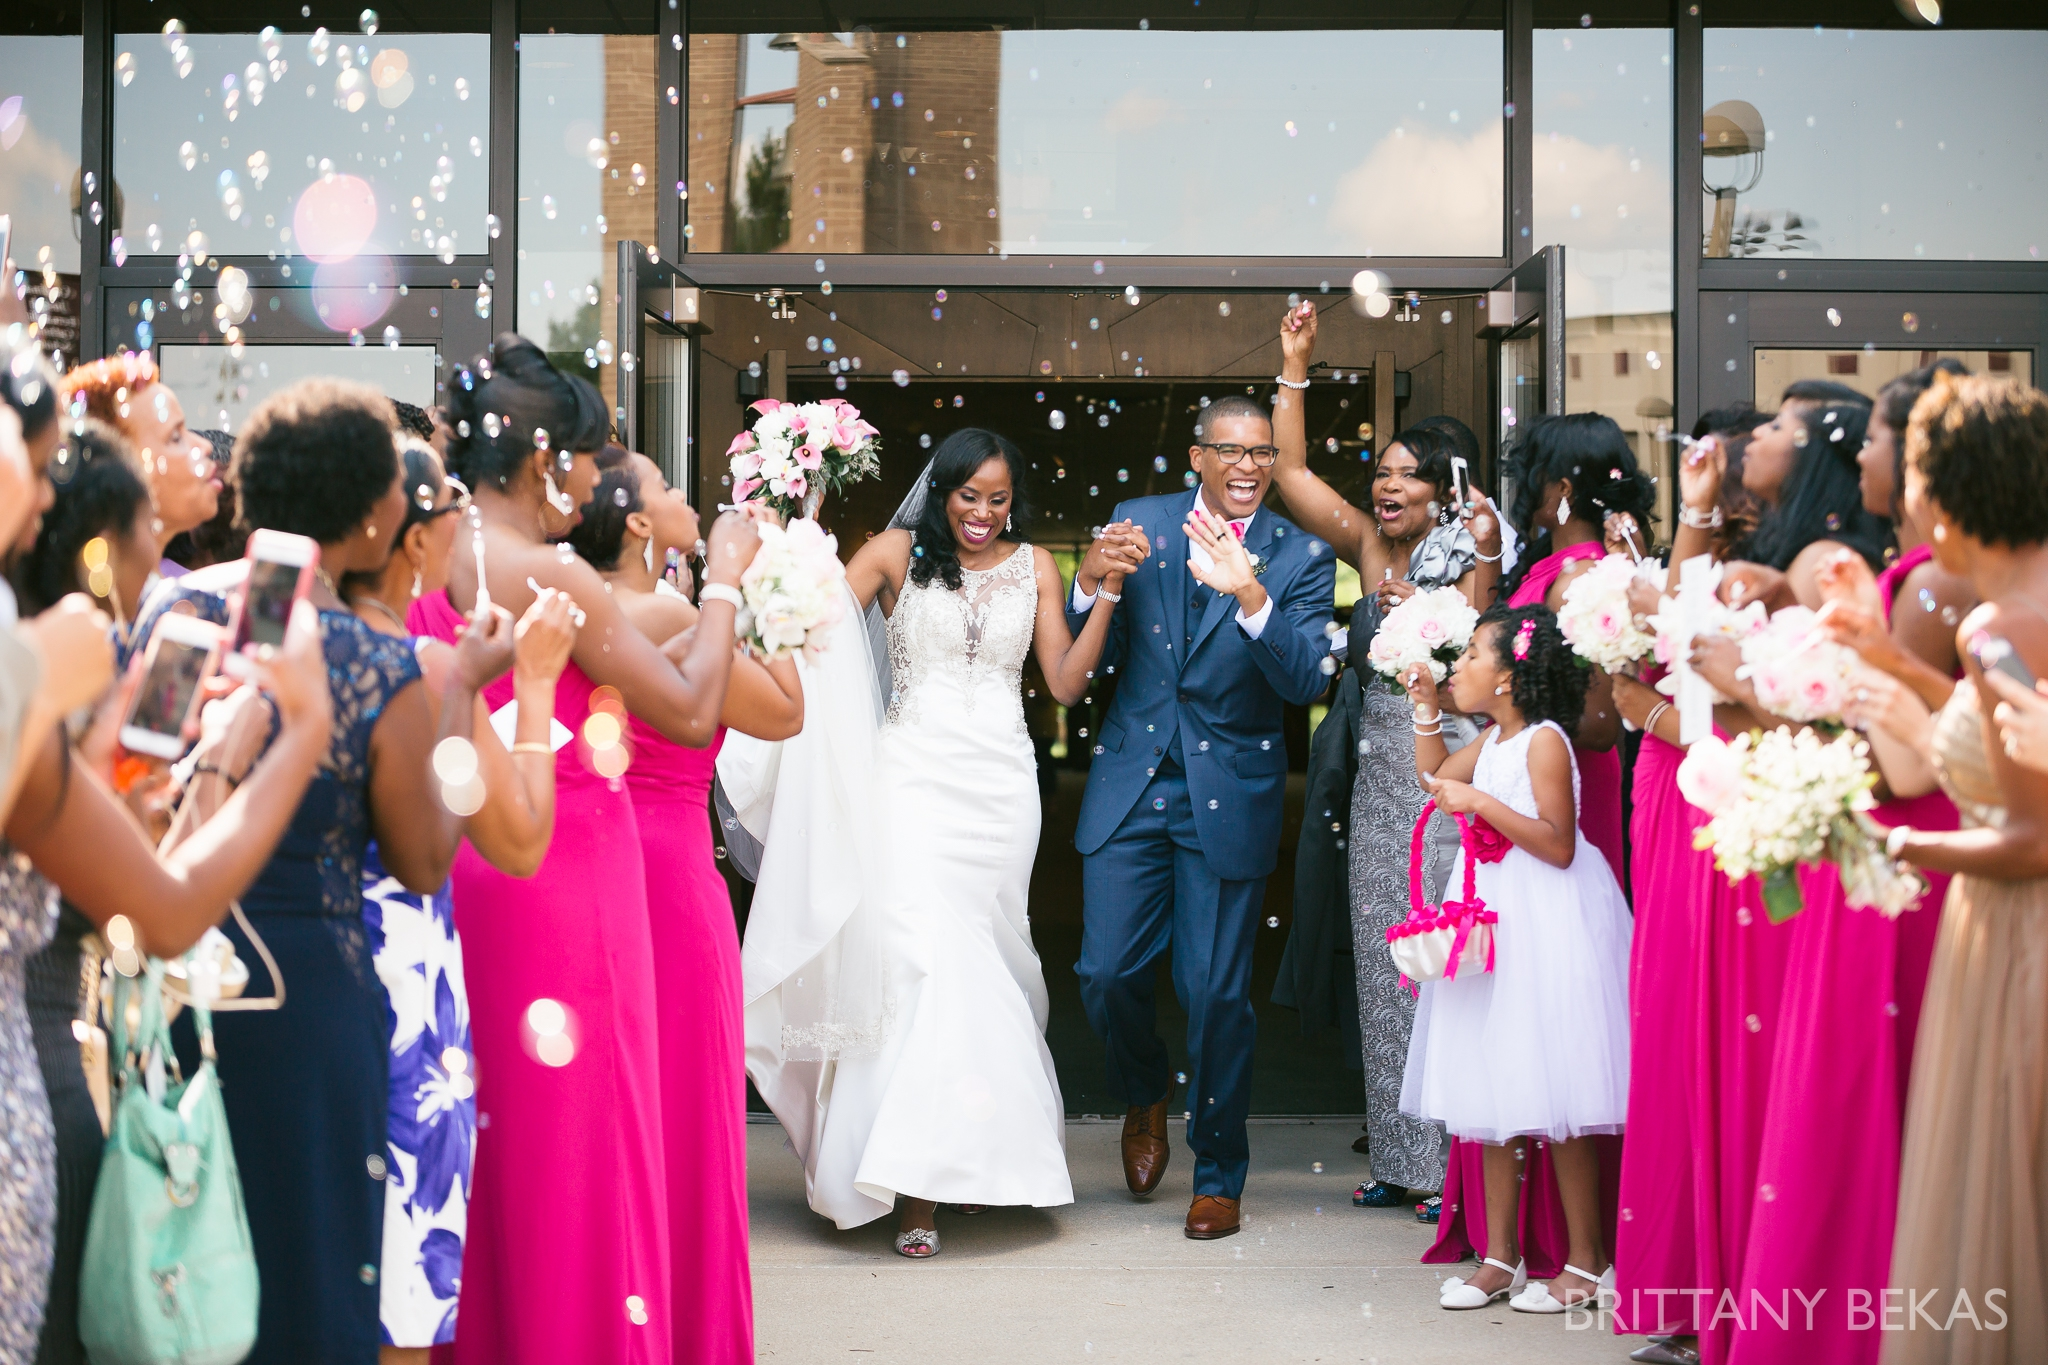 Patrick Haley Mansion Wedding - Brittany Bekas Photography_0047